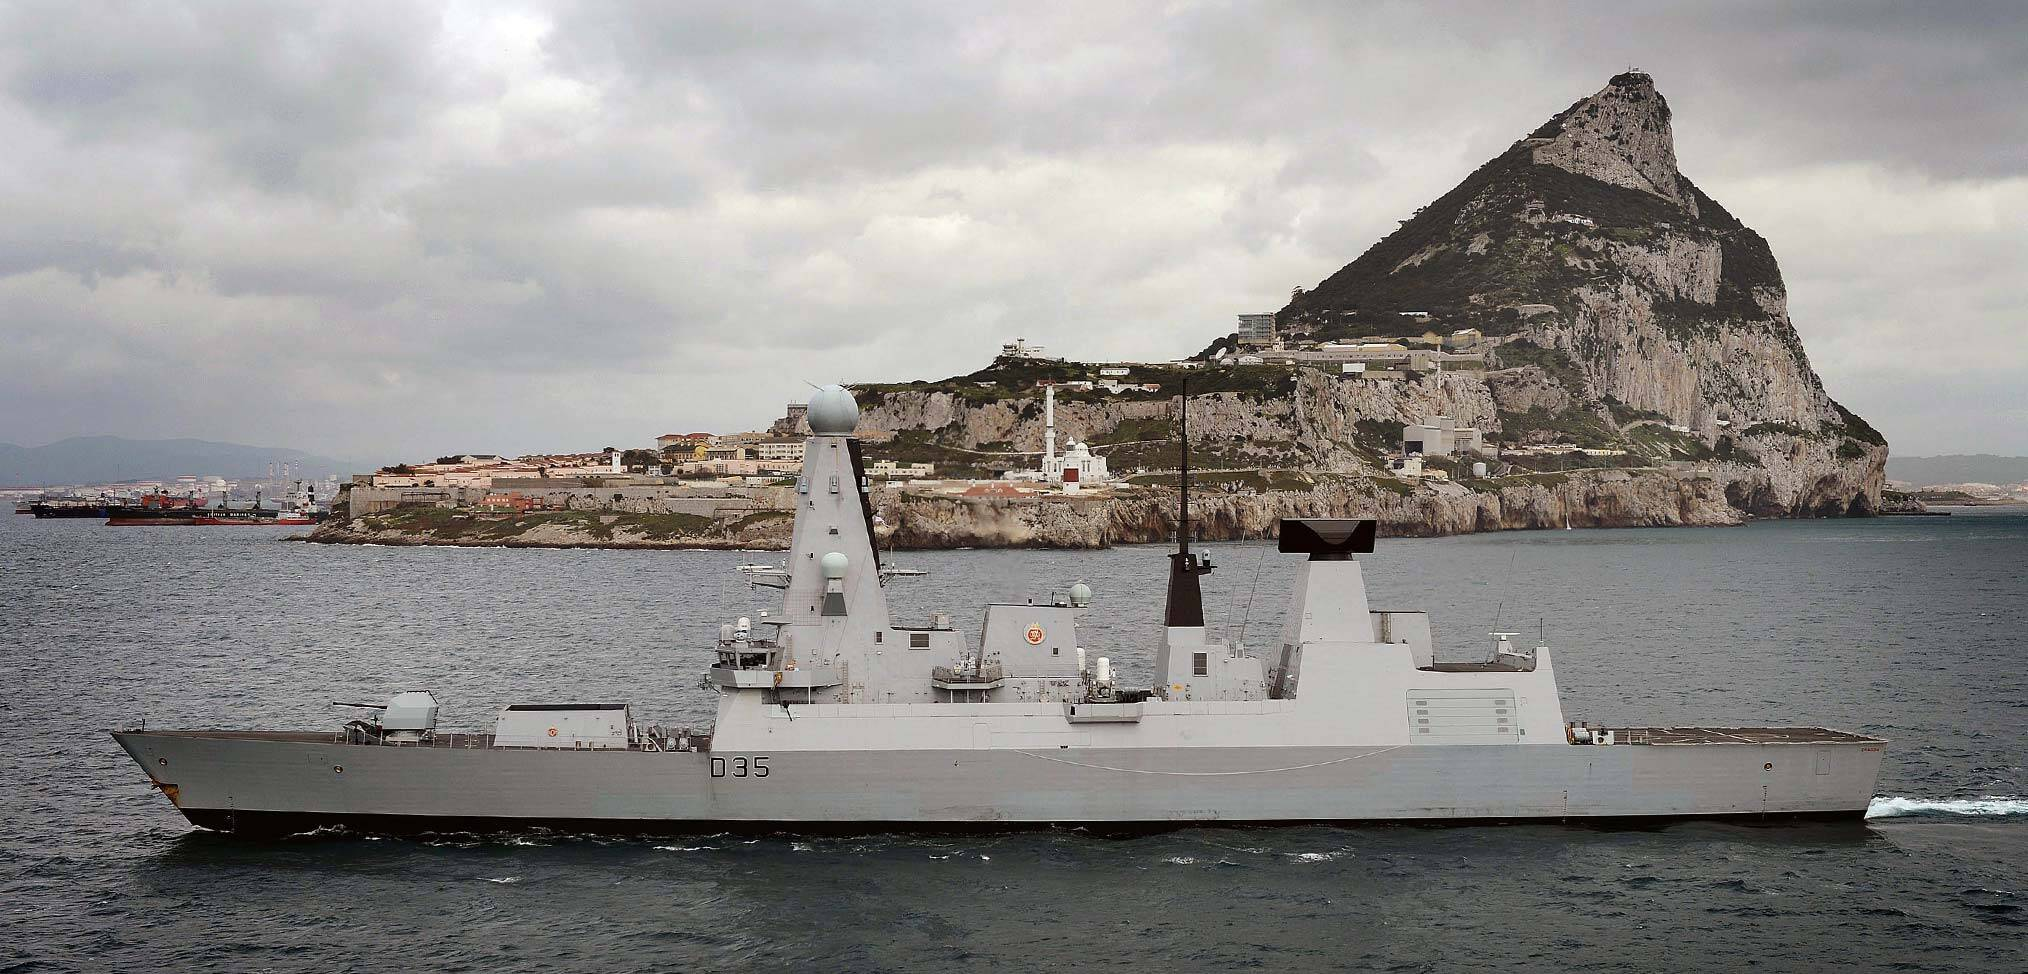 Gibraltar and the Royal Navy